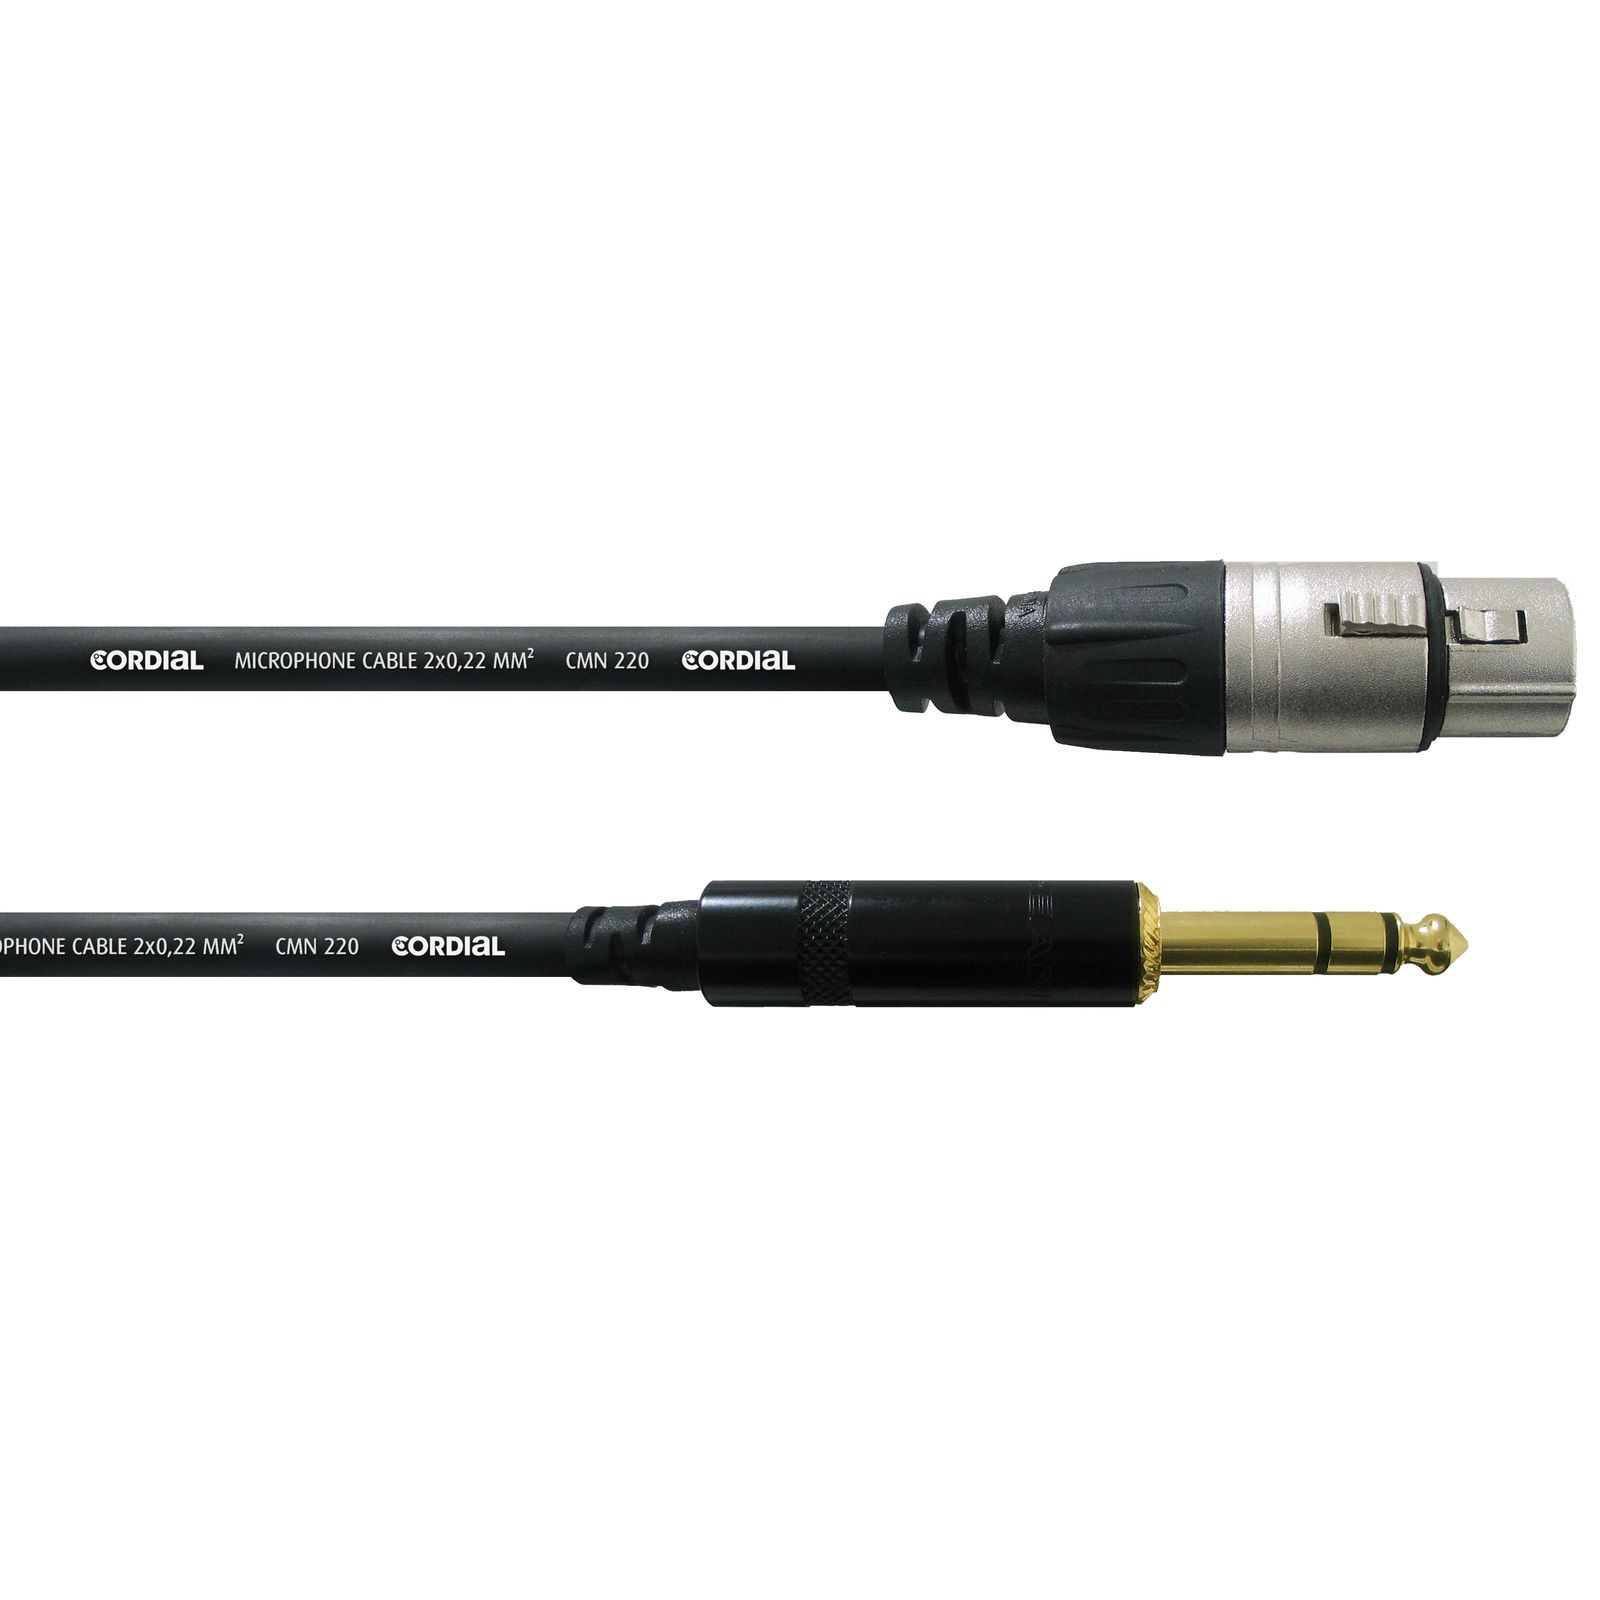 Cordial CFM 6 FV intro Microphone Cable XLR female - Jack stereo 6m Rean Produktbillede